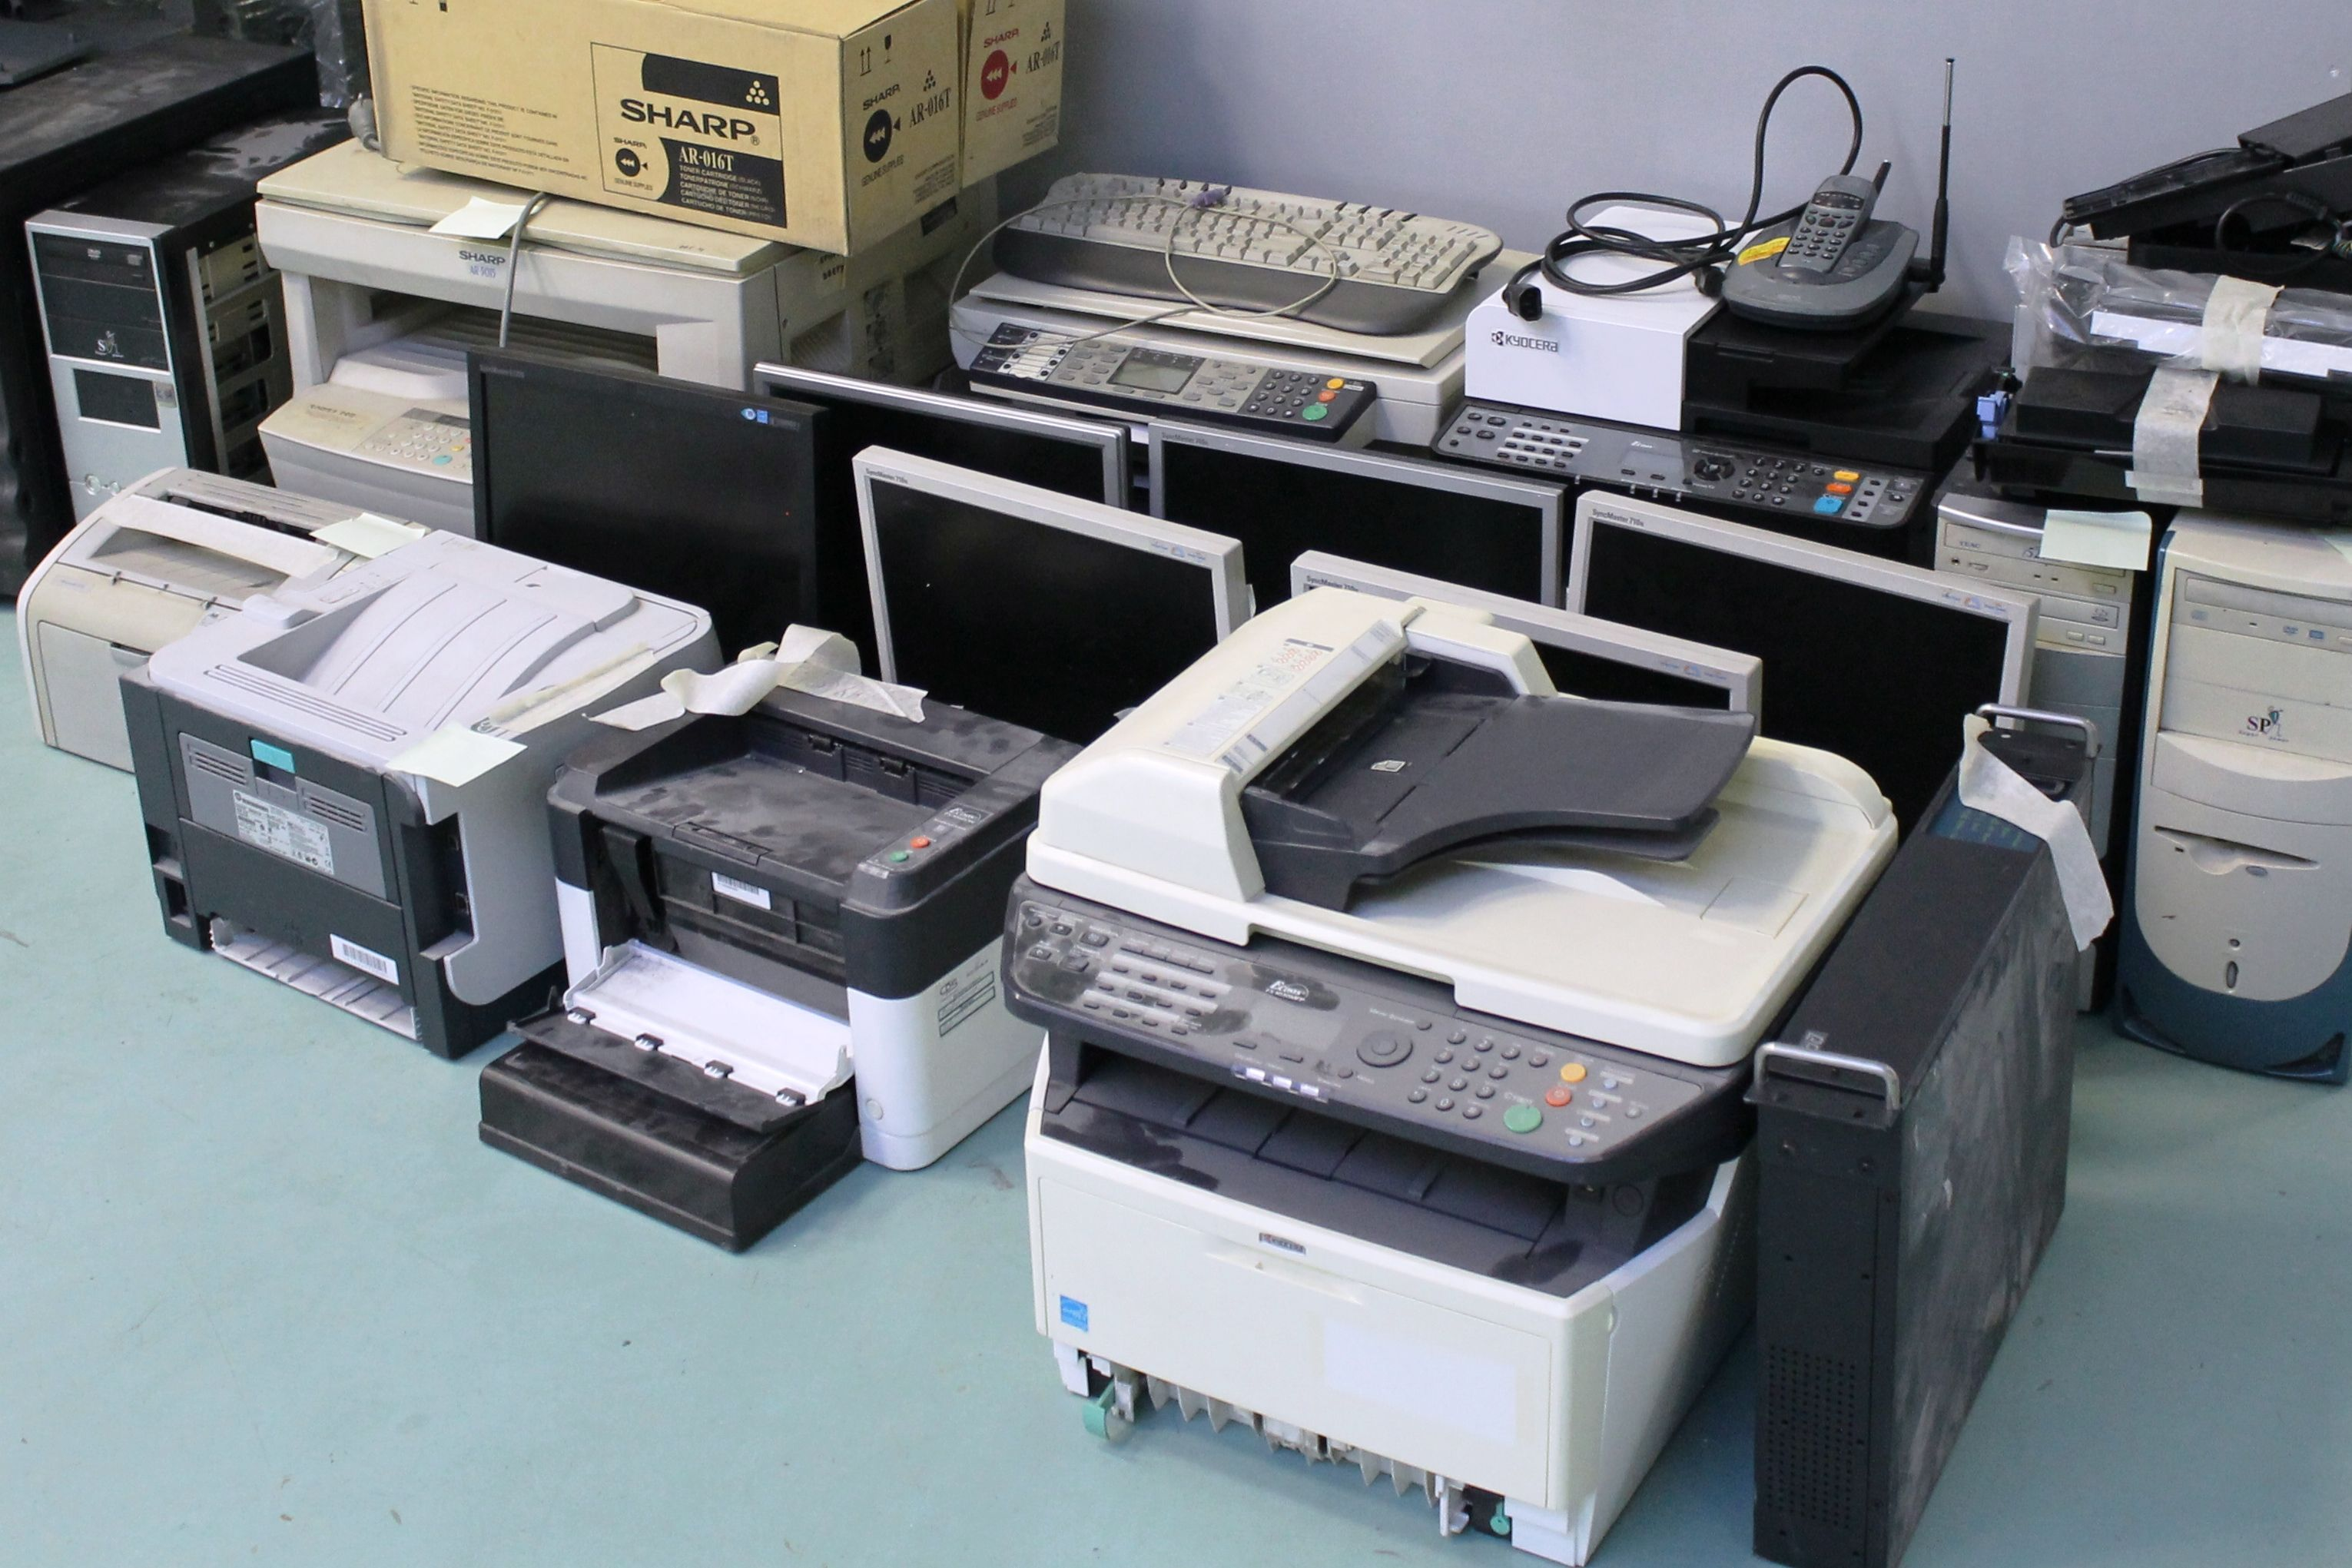 Office equipment prepared for recycling